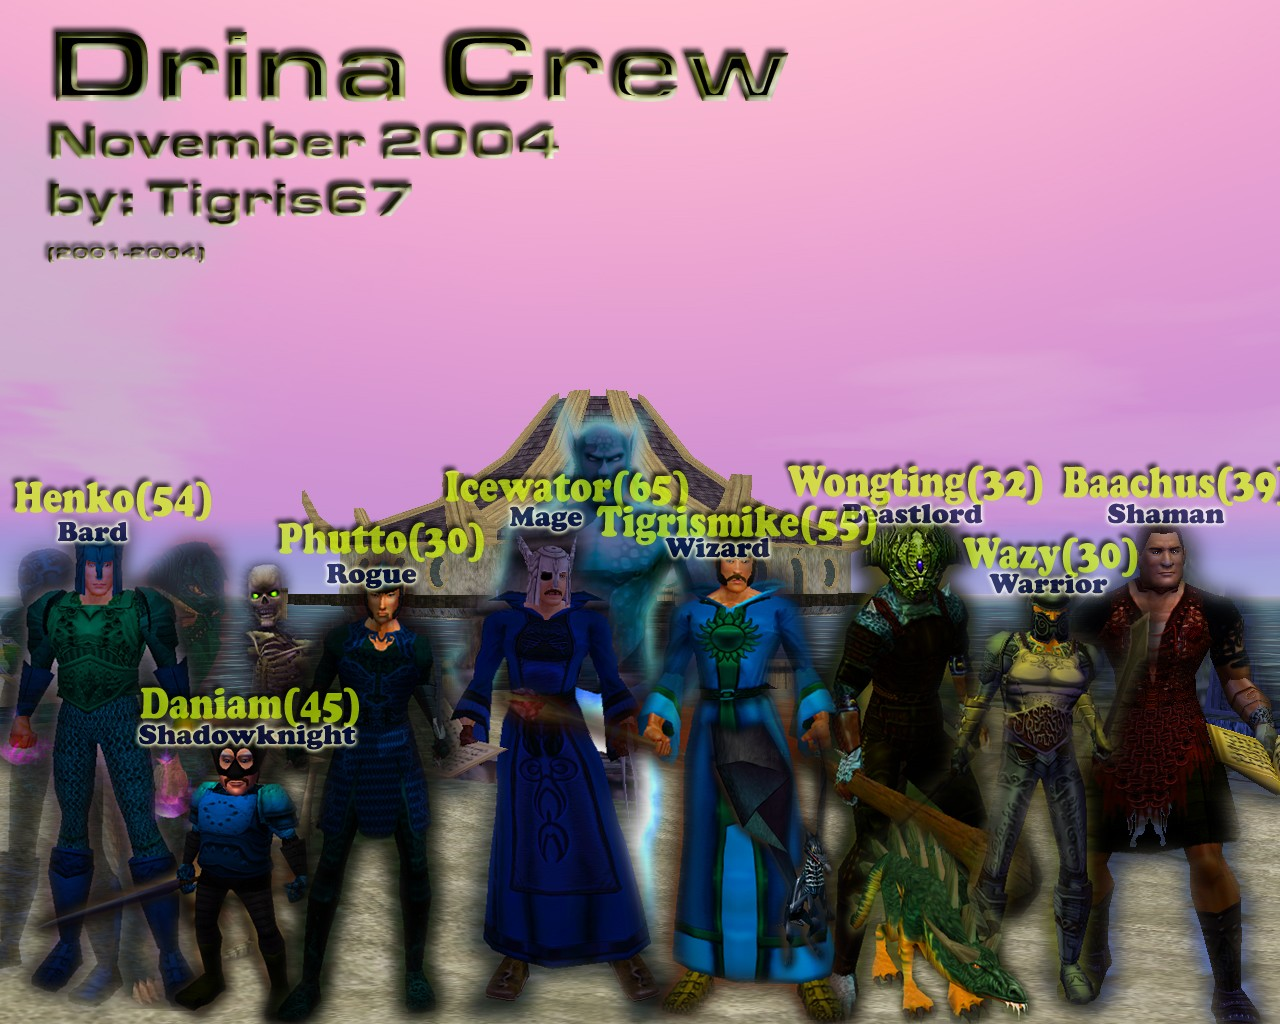 Compilation of My everquest characters from 2004